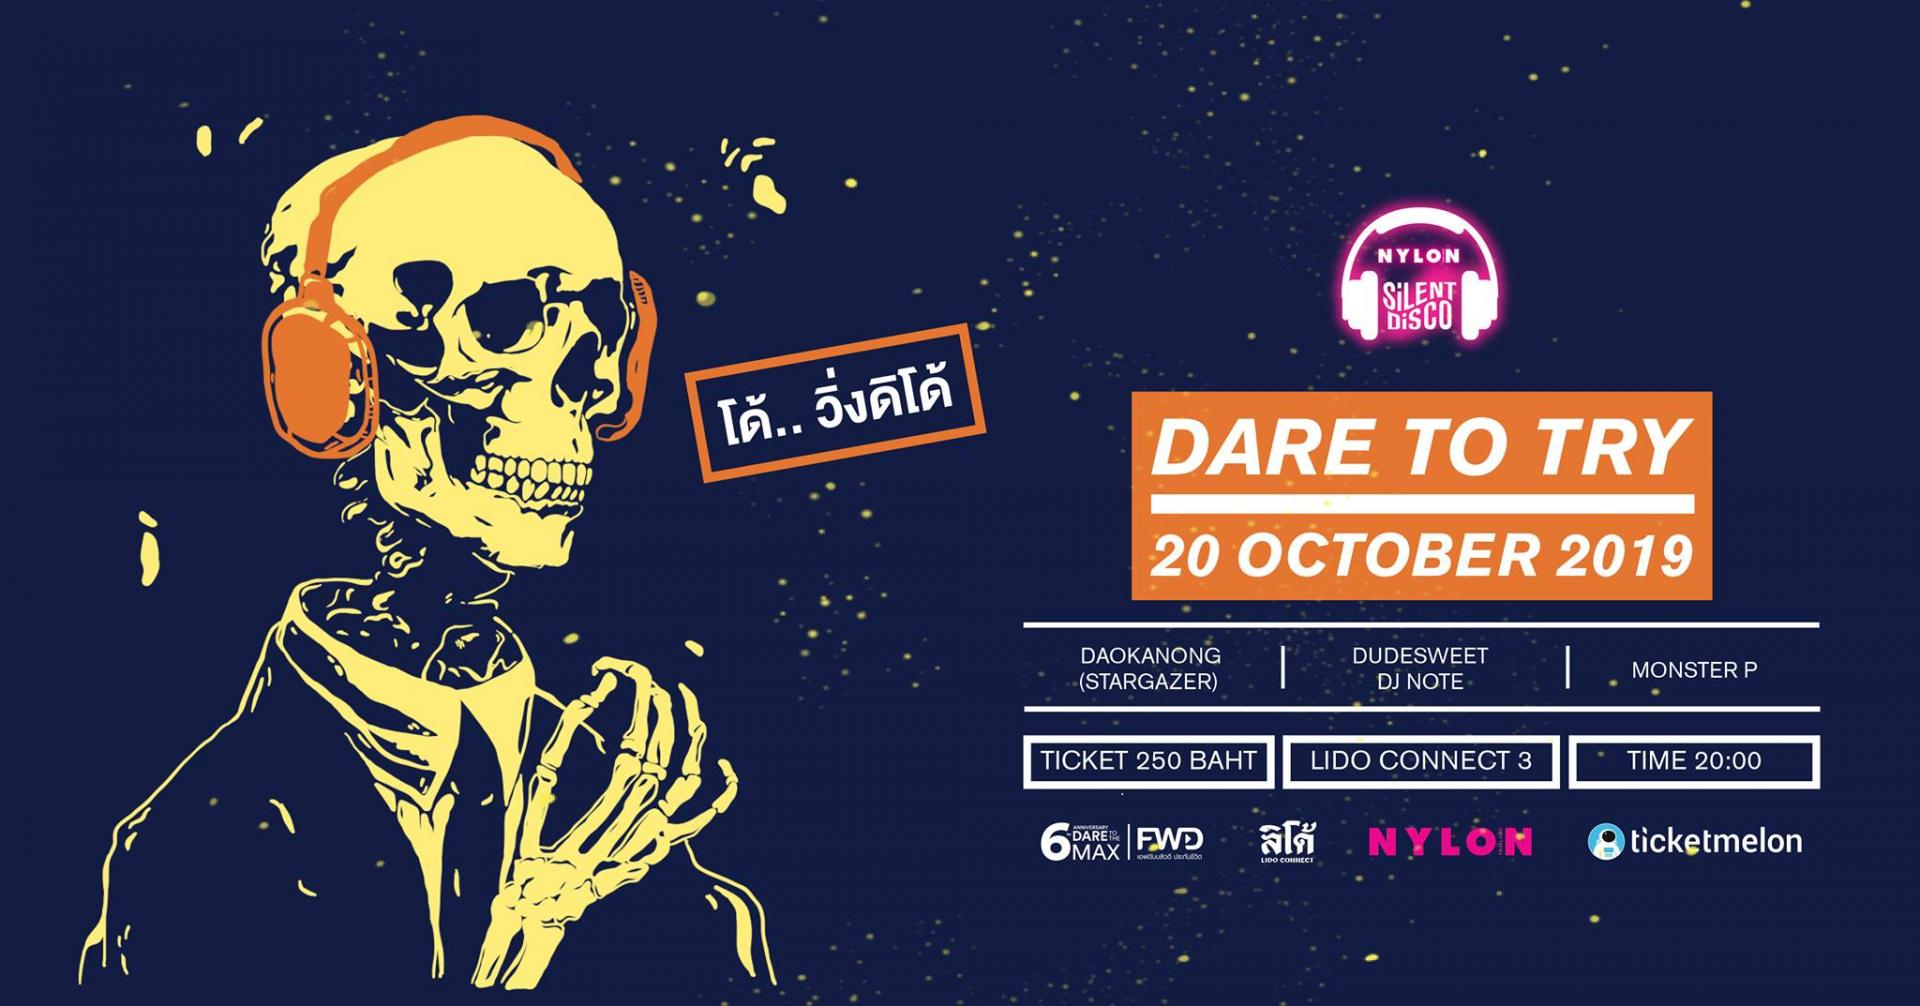 FWD Presents DARE TO TRY SILENT DISCO